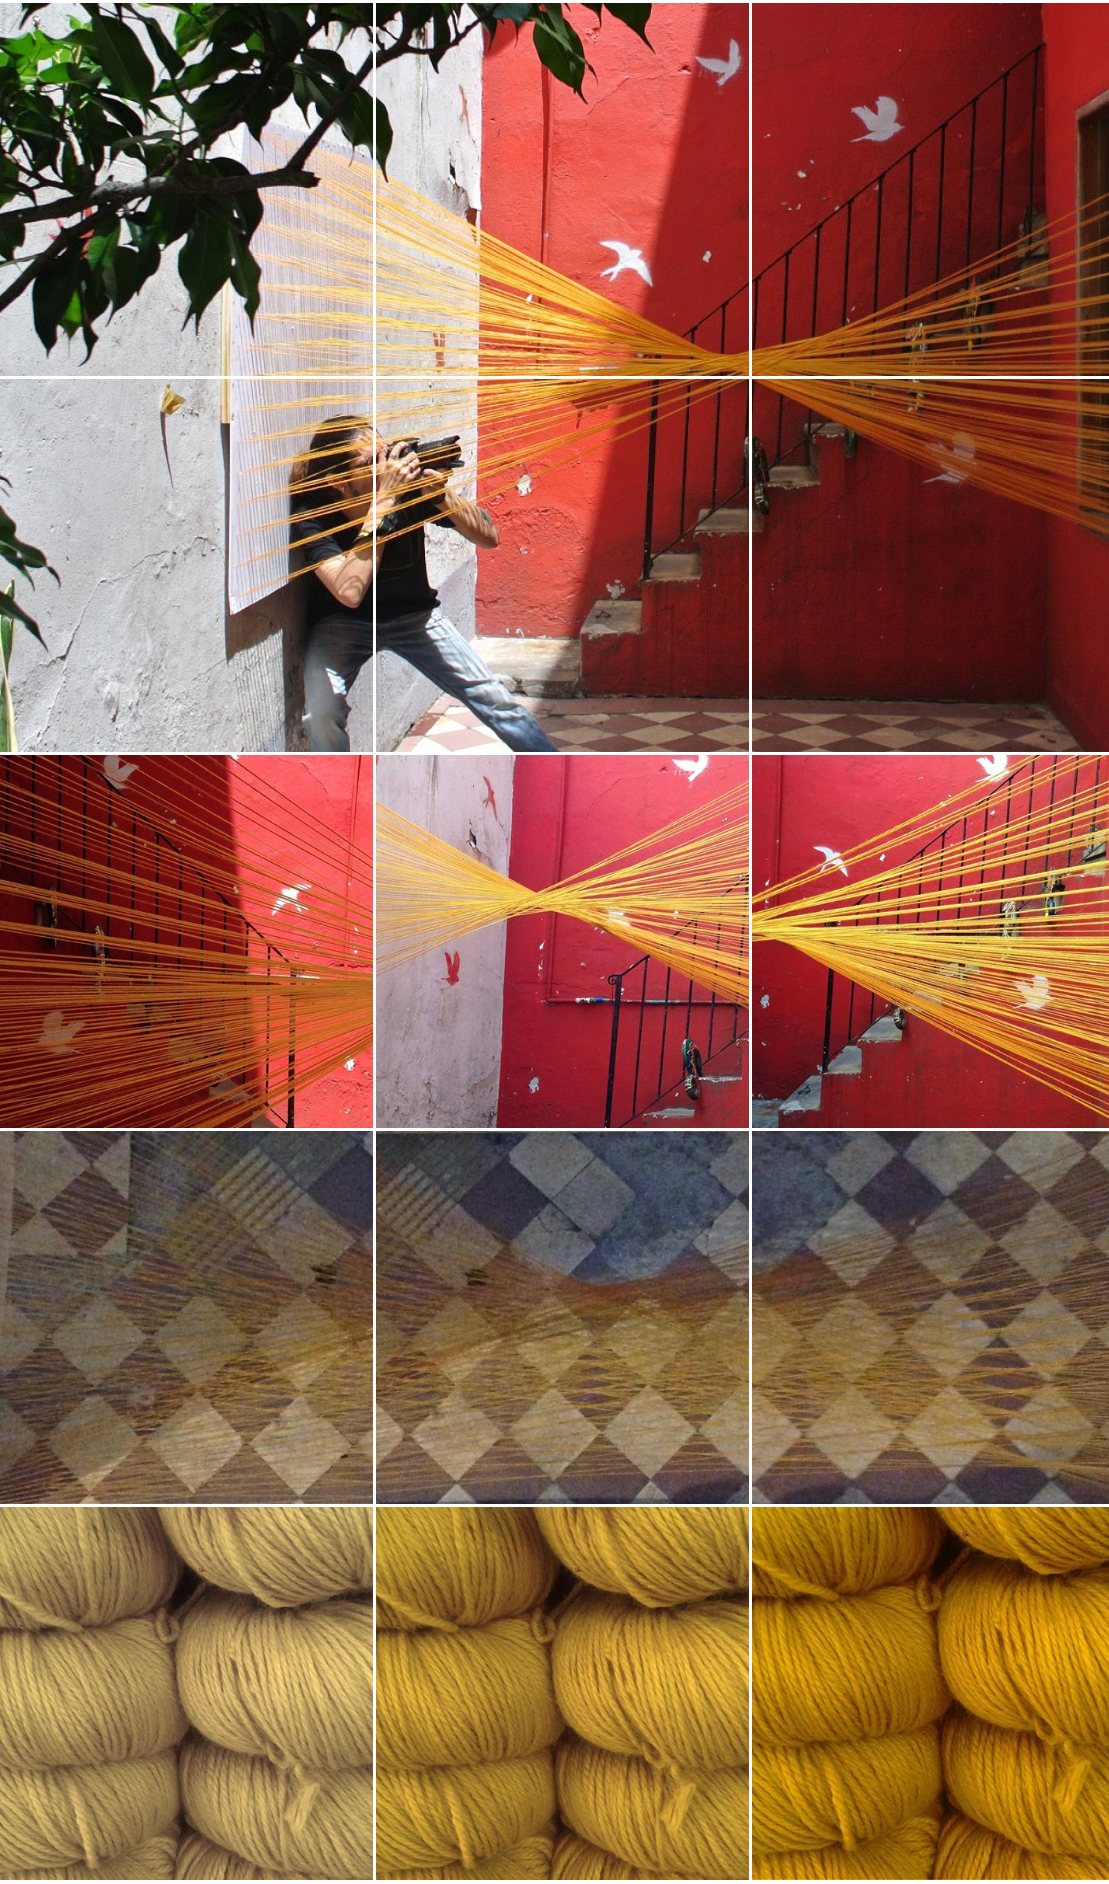 Installation test fit, by One South, Palermo, Buenos Aires 12-2016